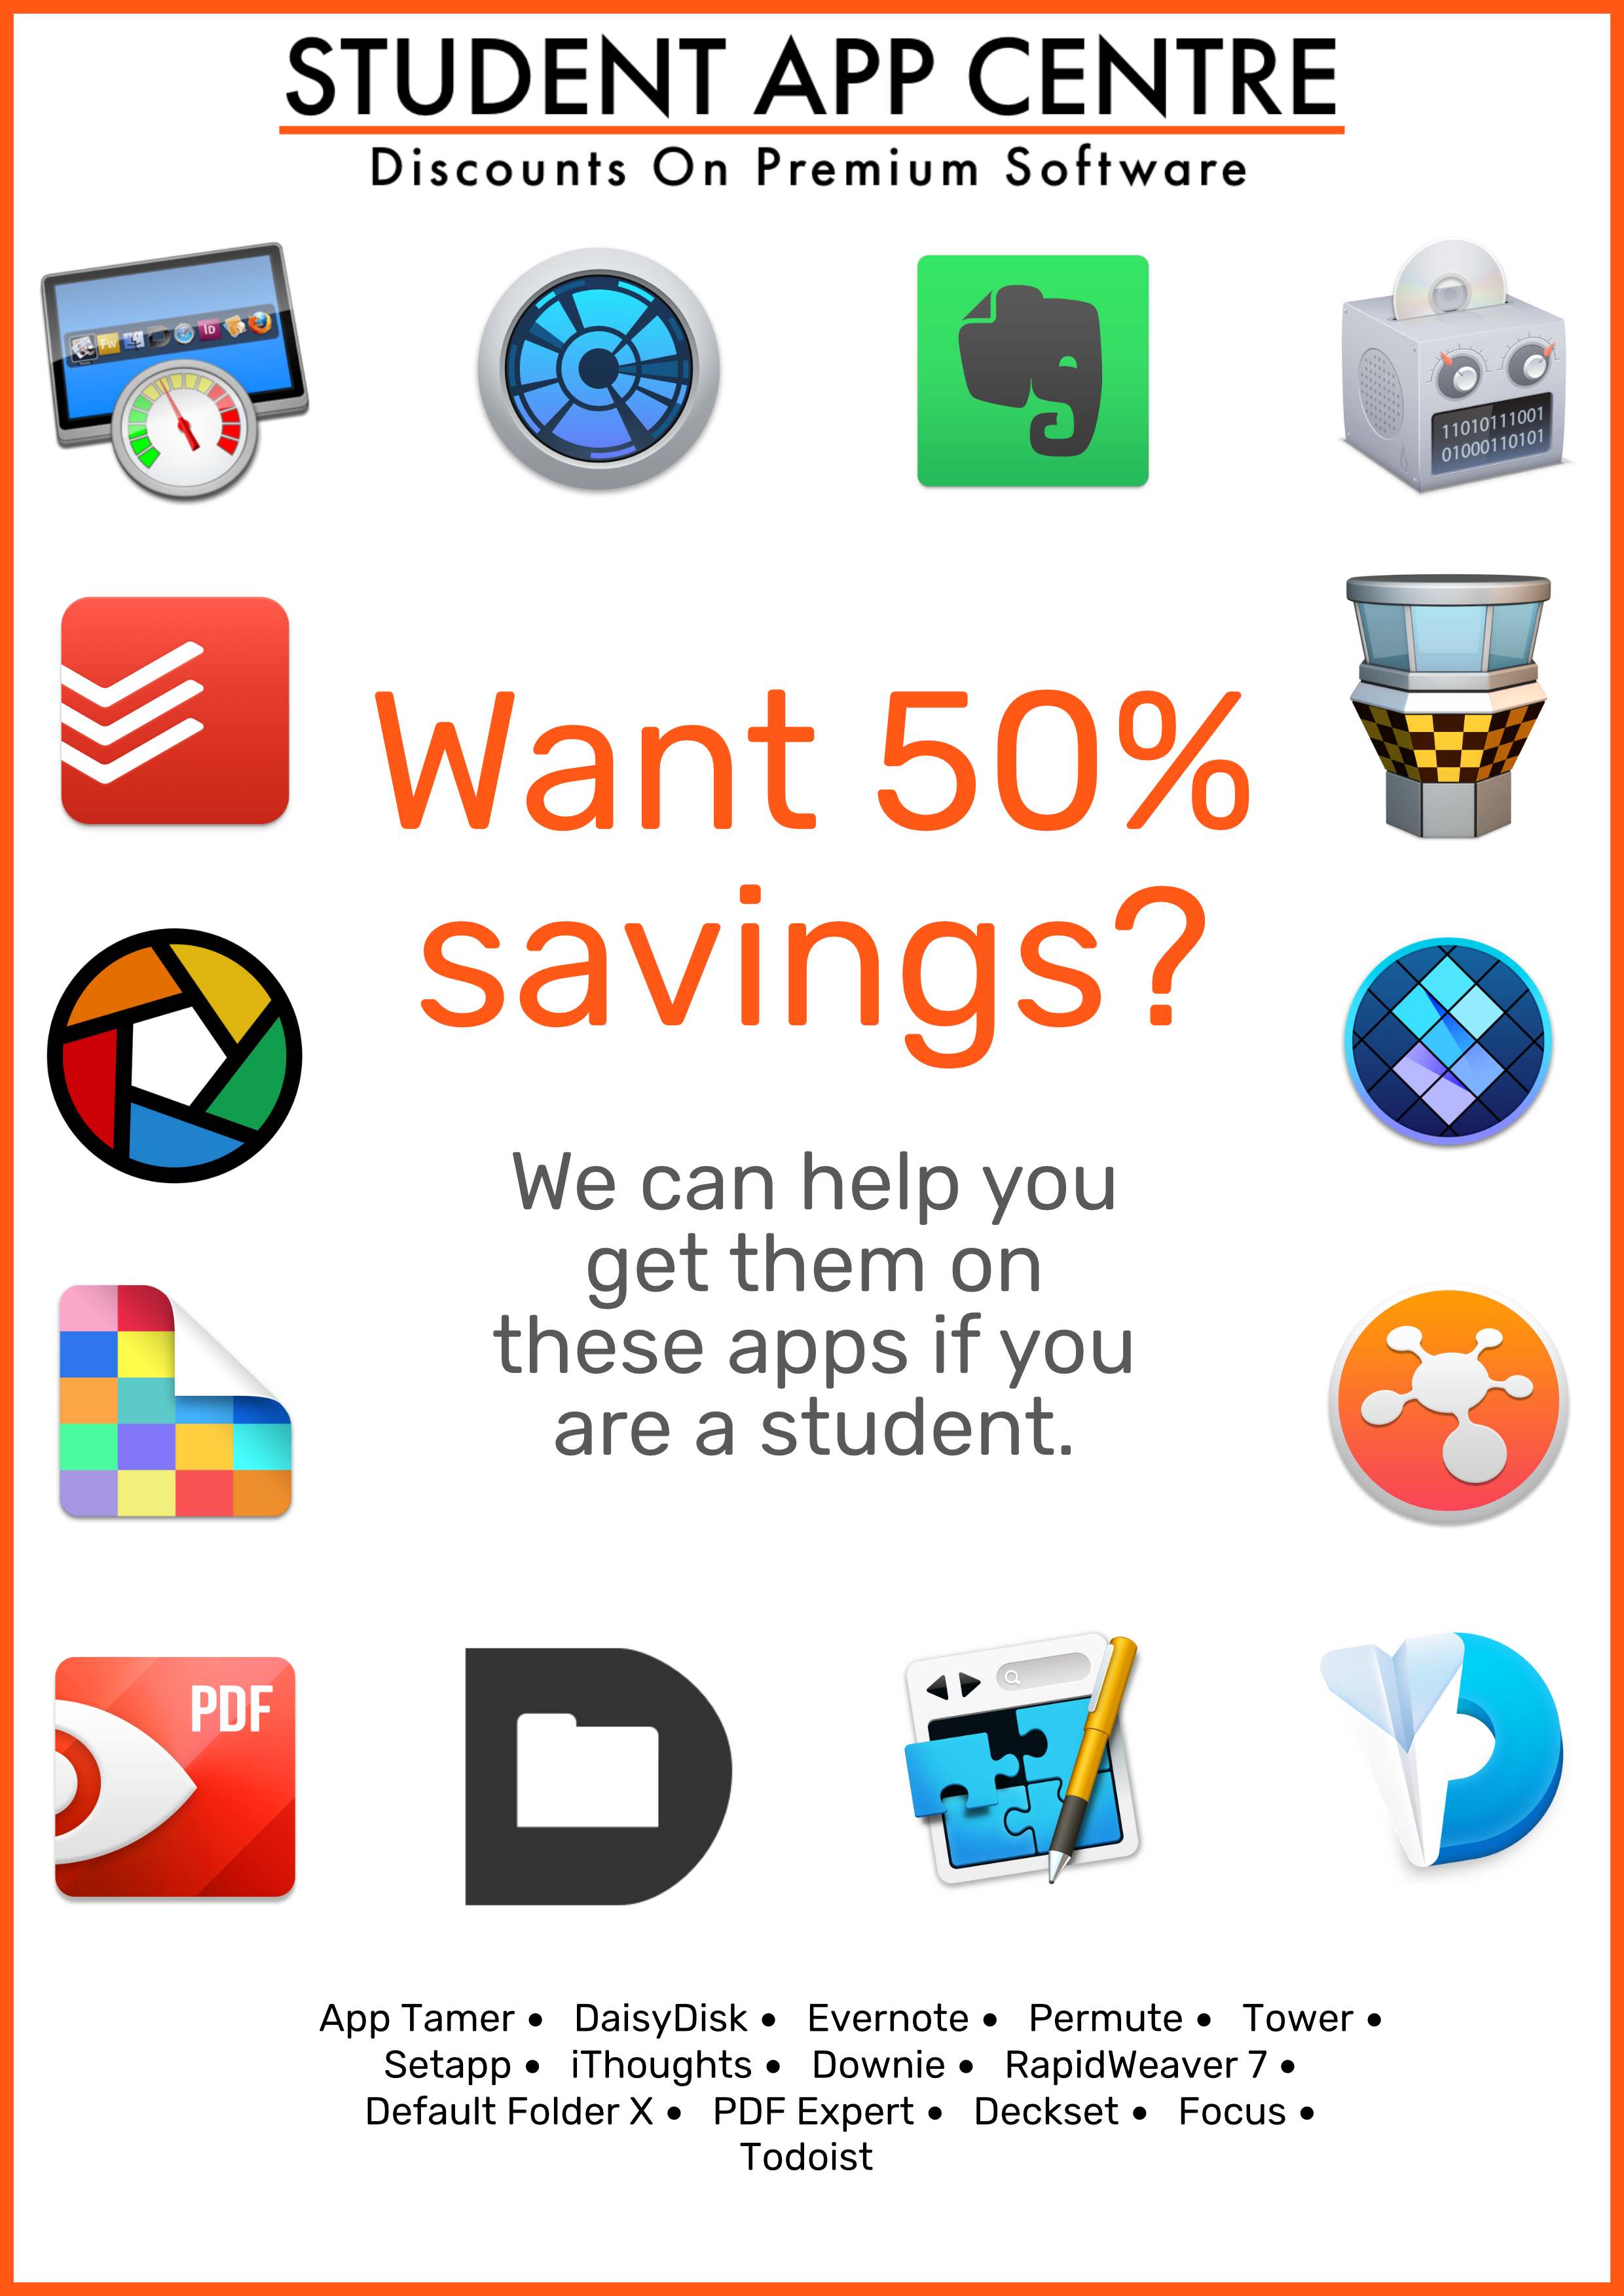 ️All these apps have 50 off ️Don't waste time, get these